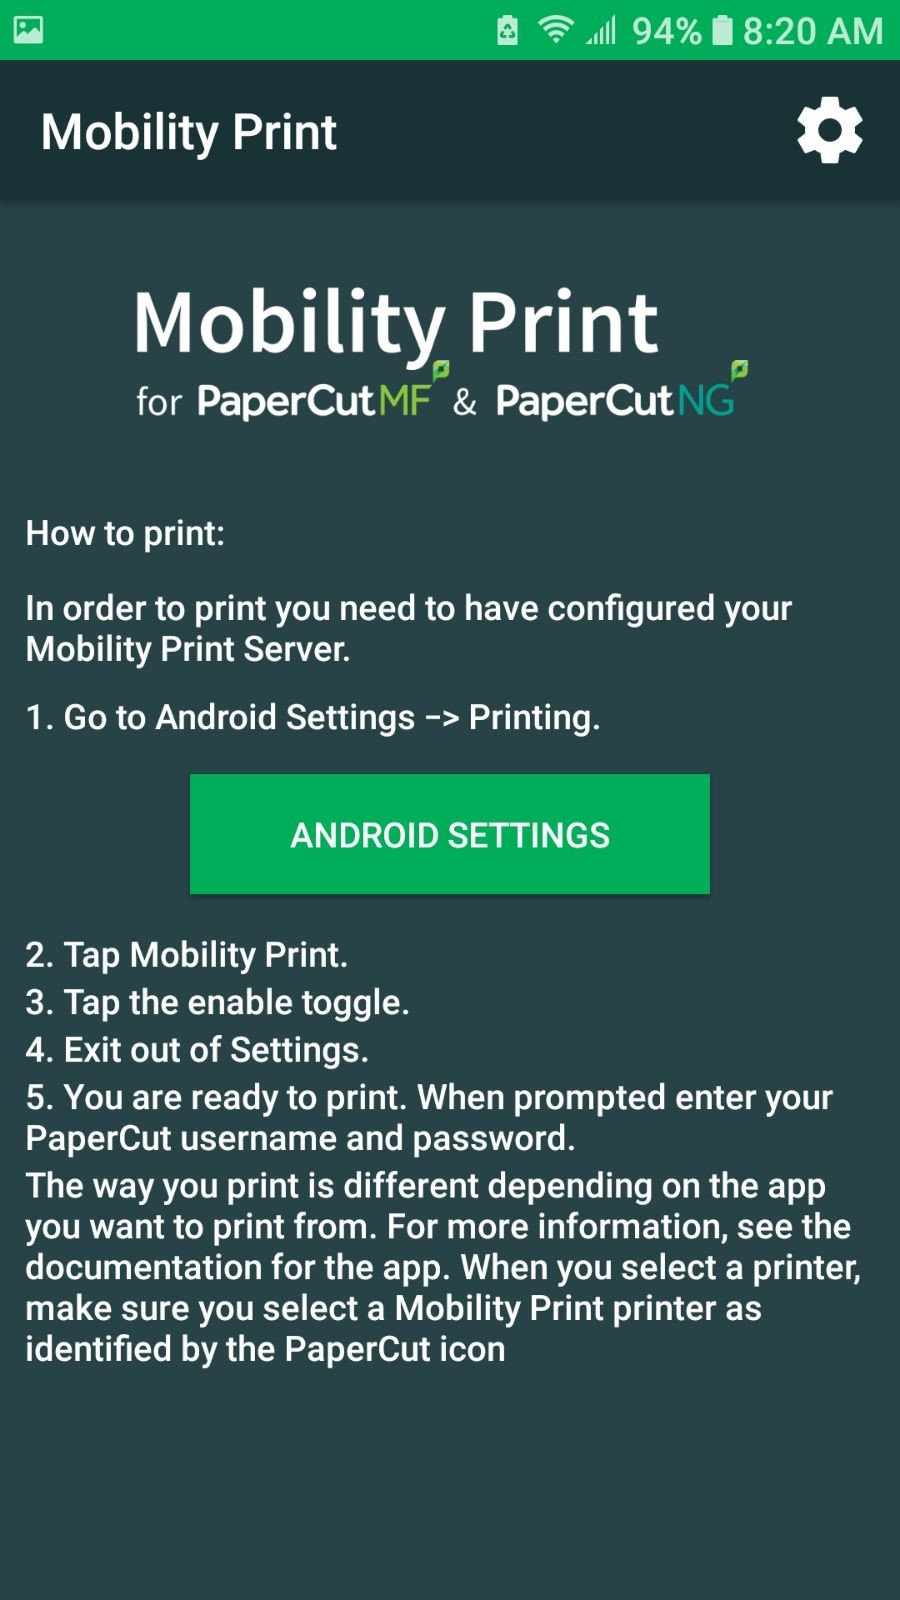 Mobility_Print_Android_Settings.jpg